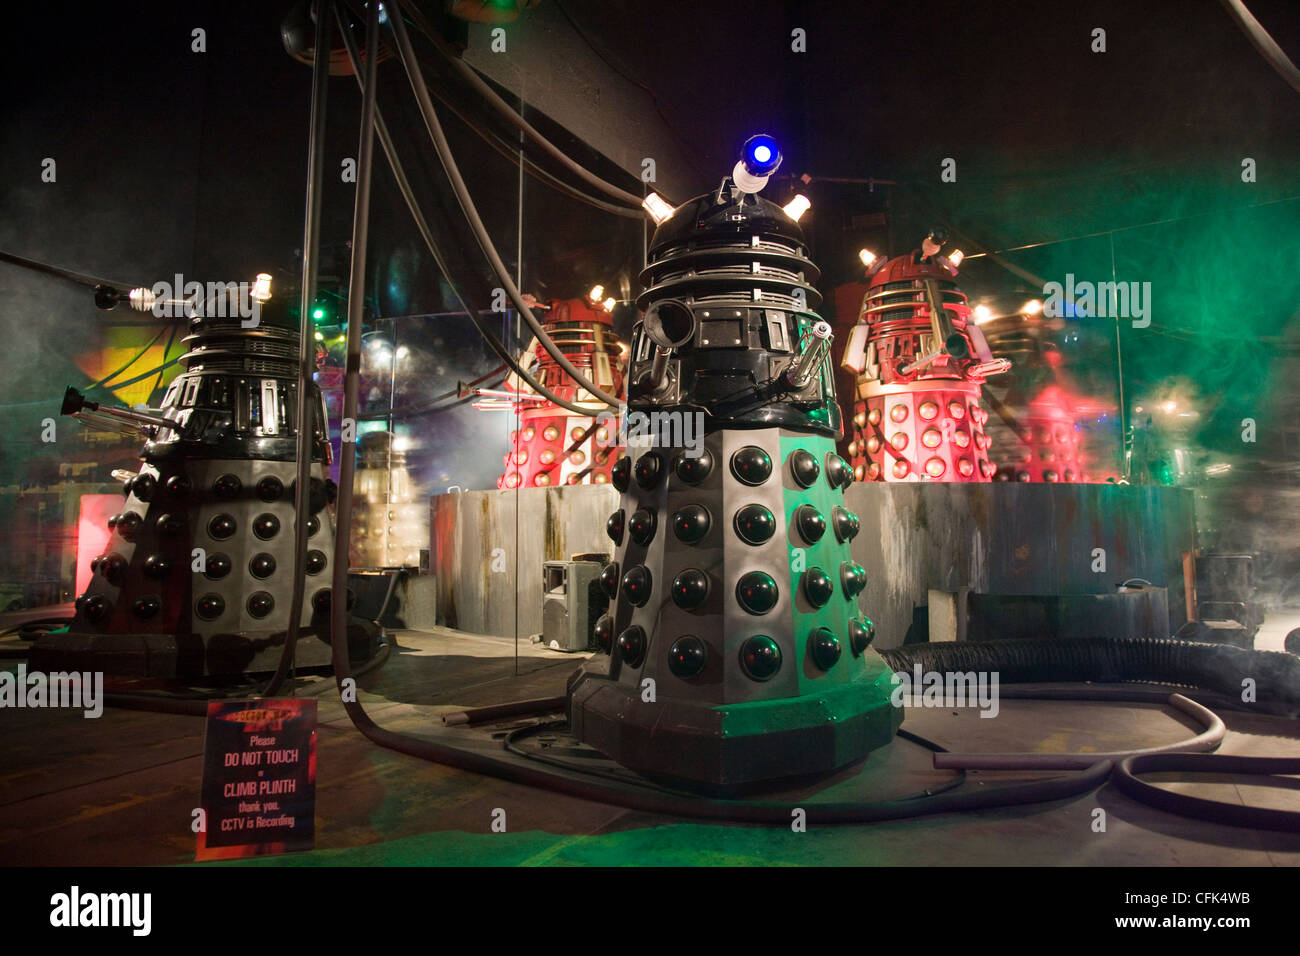 Daleks at a Doctor Who exhibition - Stock Image